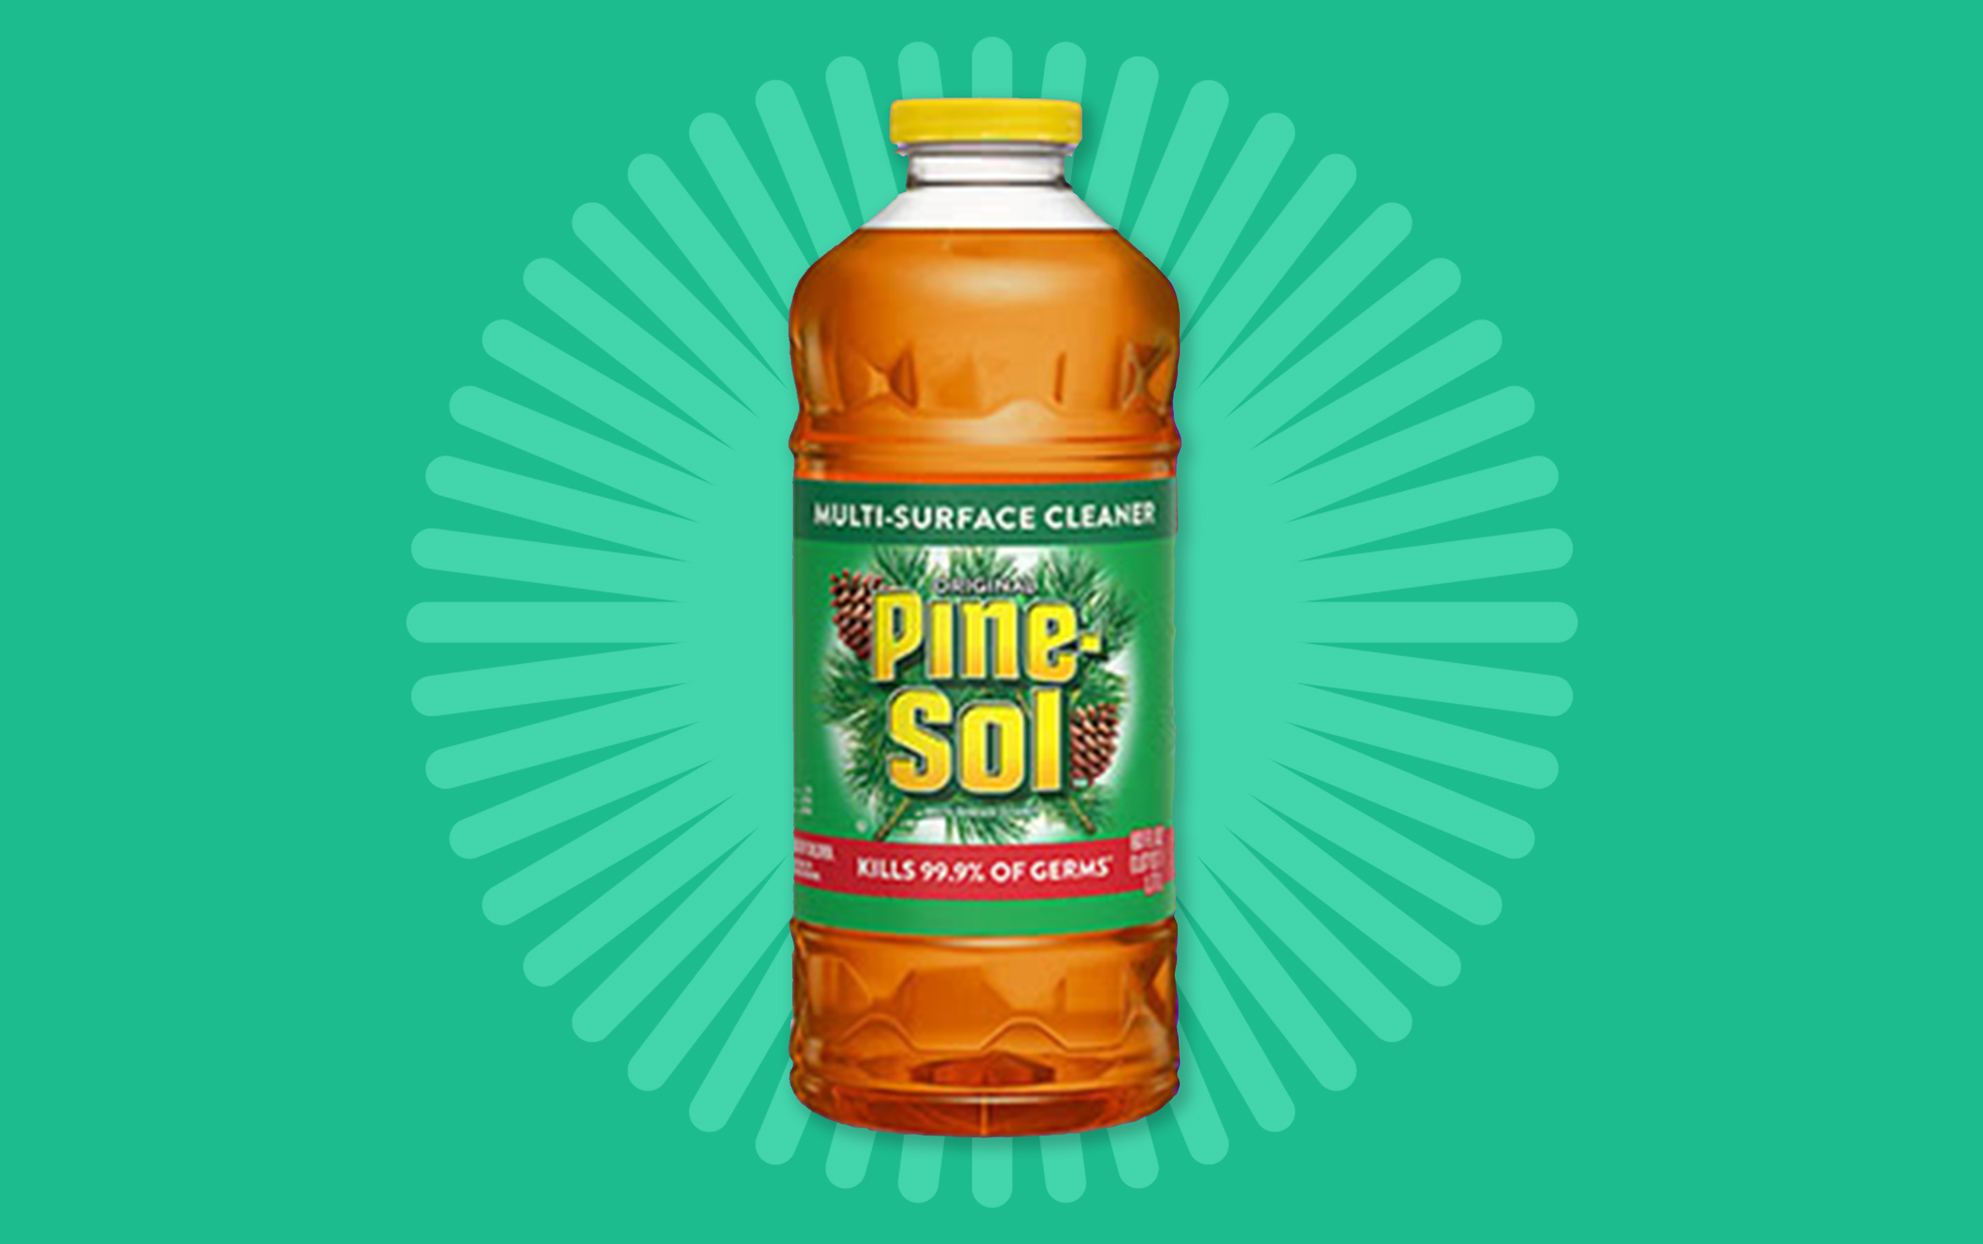 Bottle of Pine-Sol cleaner on a green background